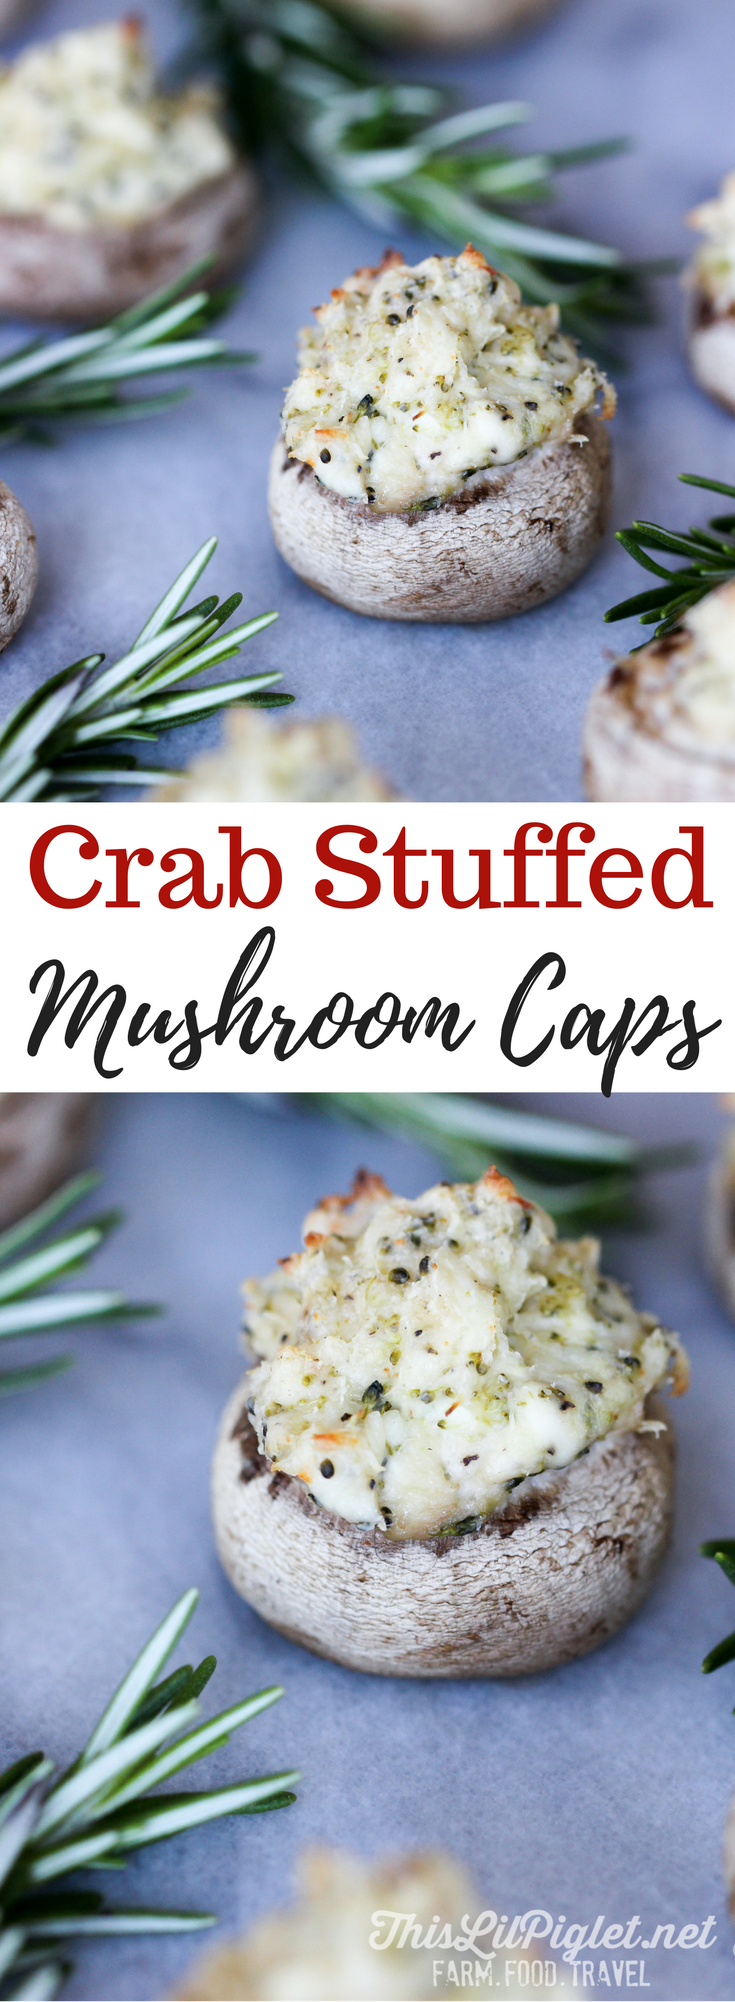 Crab Stuffed Mushroom Caps Appetizers // via @thislilpiglet